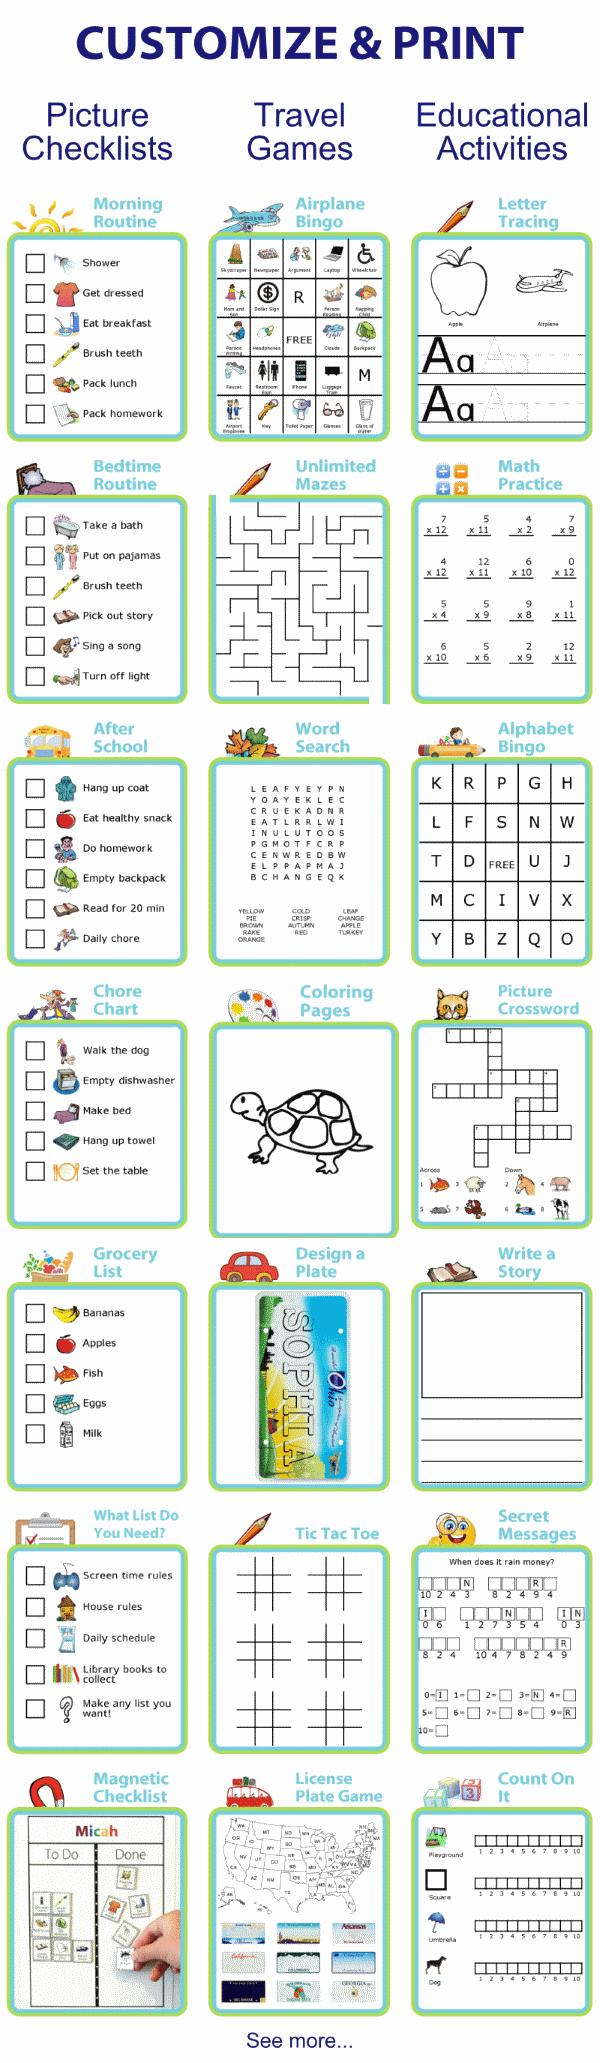 Over 30 activities for kids you can customize and print including picture checklists and travel games